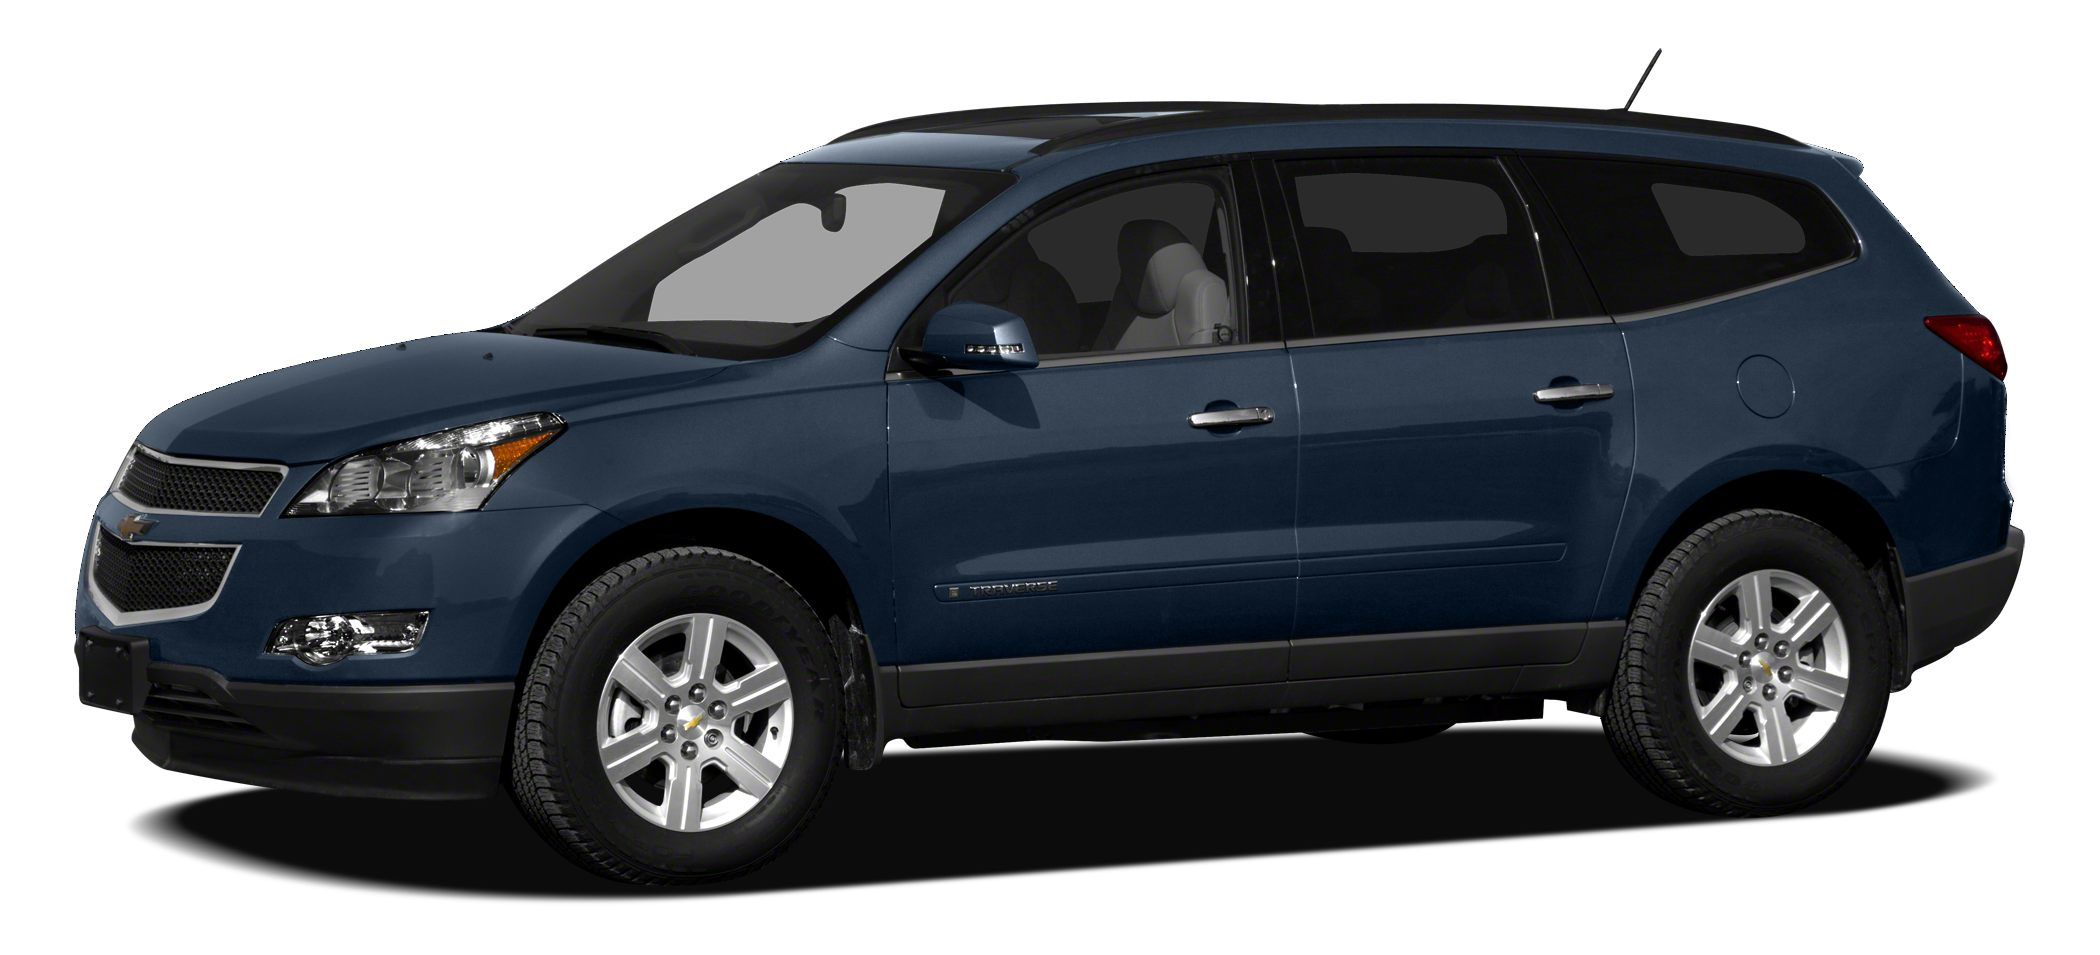 2012 Chevrolet Traverse 1LT LOW MILES - 52862 LT w1LT trim EPA 24 MPG Hwy17 MPG City 3rd Row